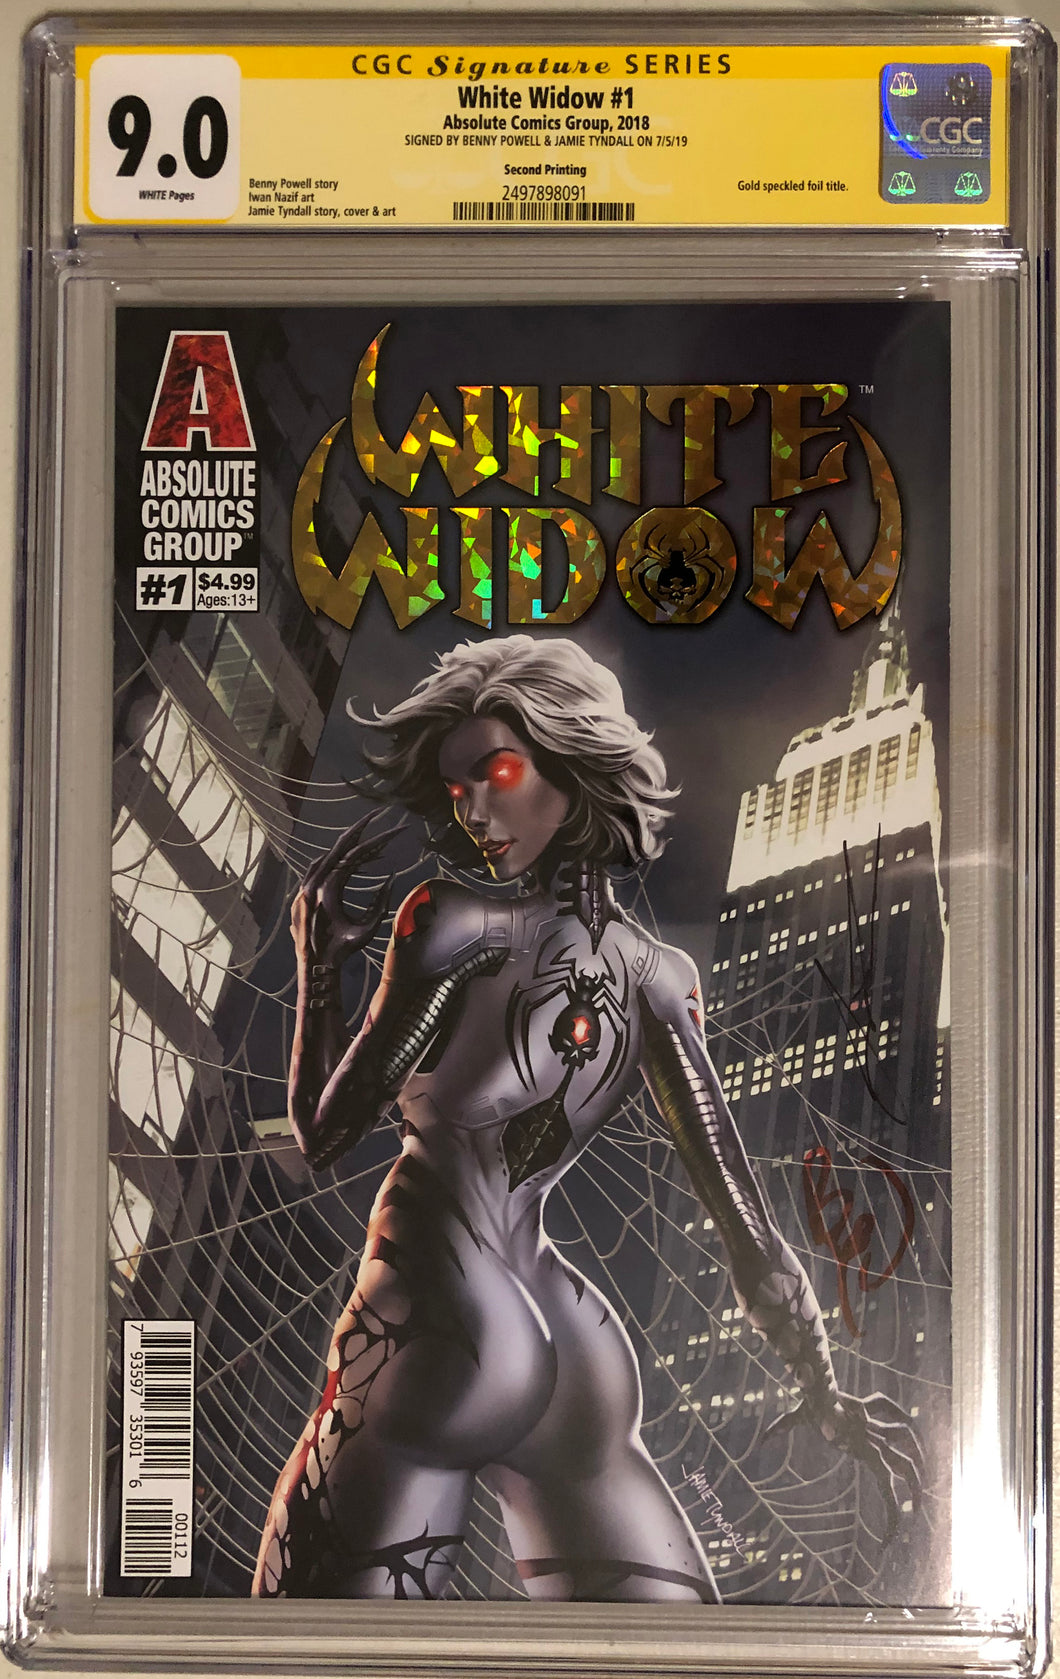 White Widow #1A2 - Painted Gold Retail 2nd - CGC 9.0 Yellow Label